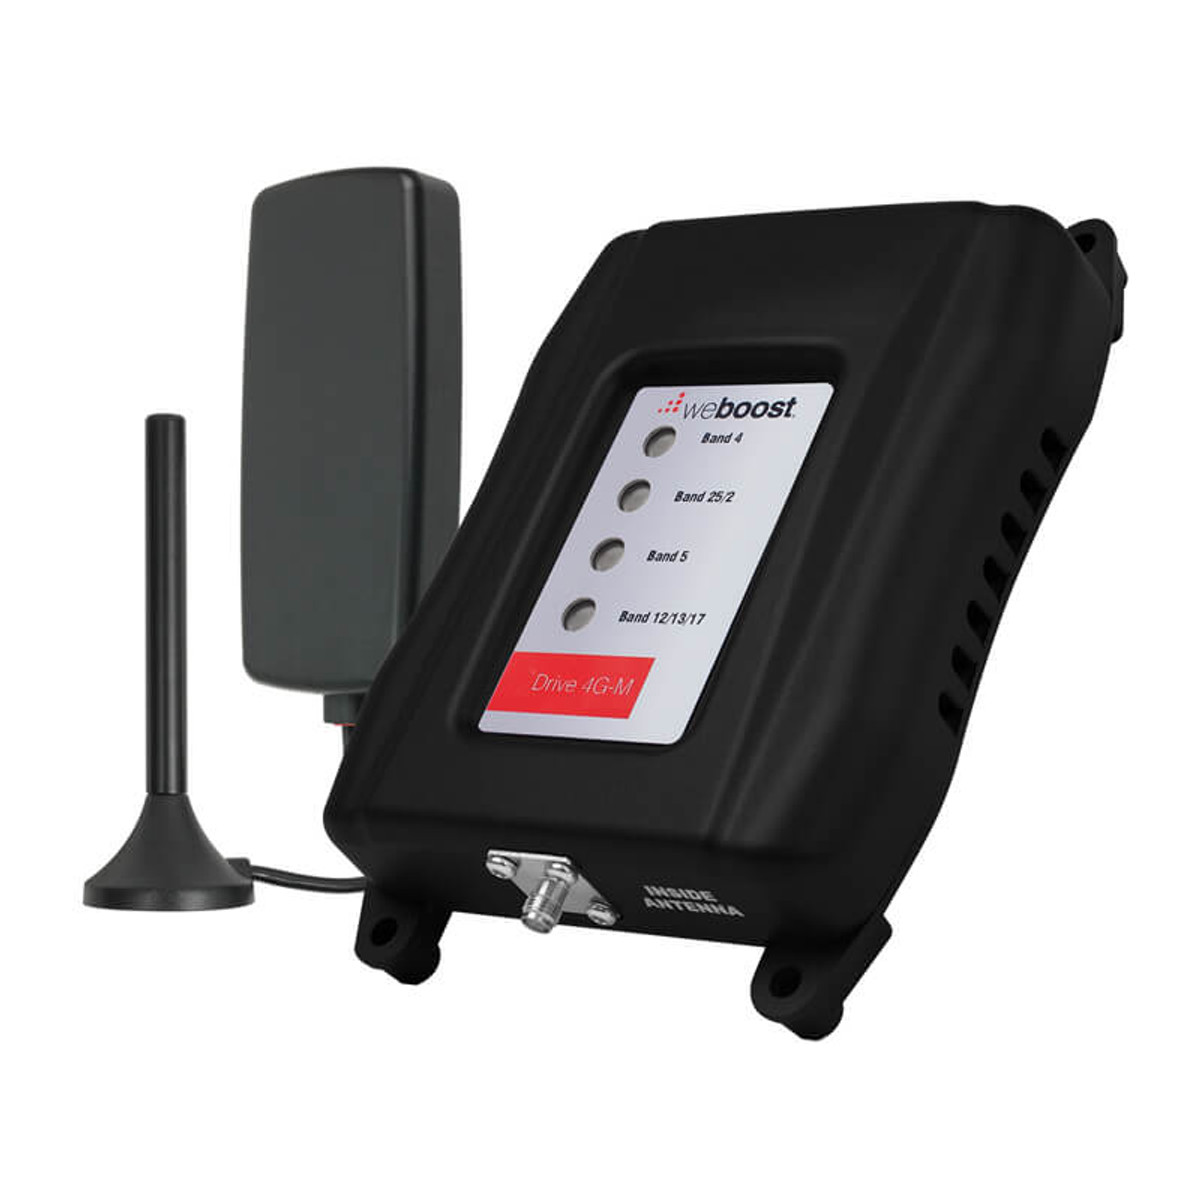 weBoost Drive 4G-M Cell Phone Signal Booster | 470121 (Formerly 470108)